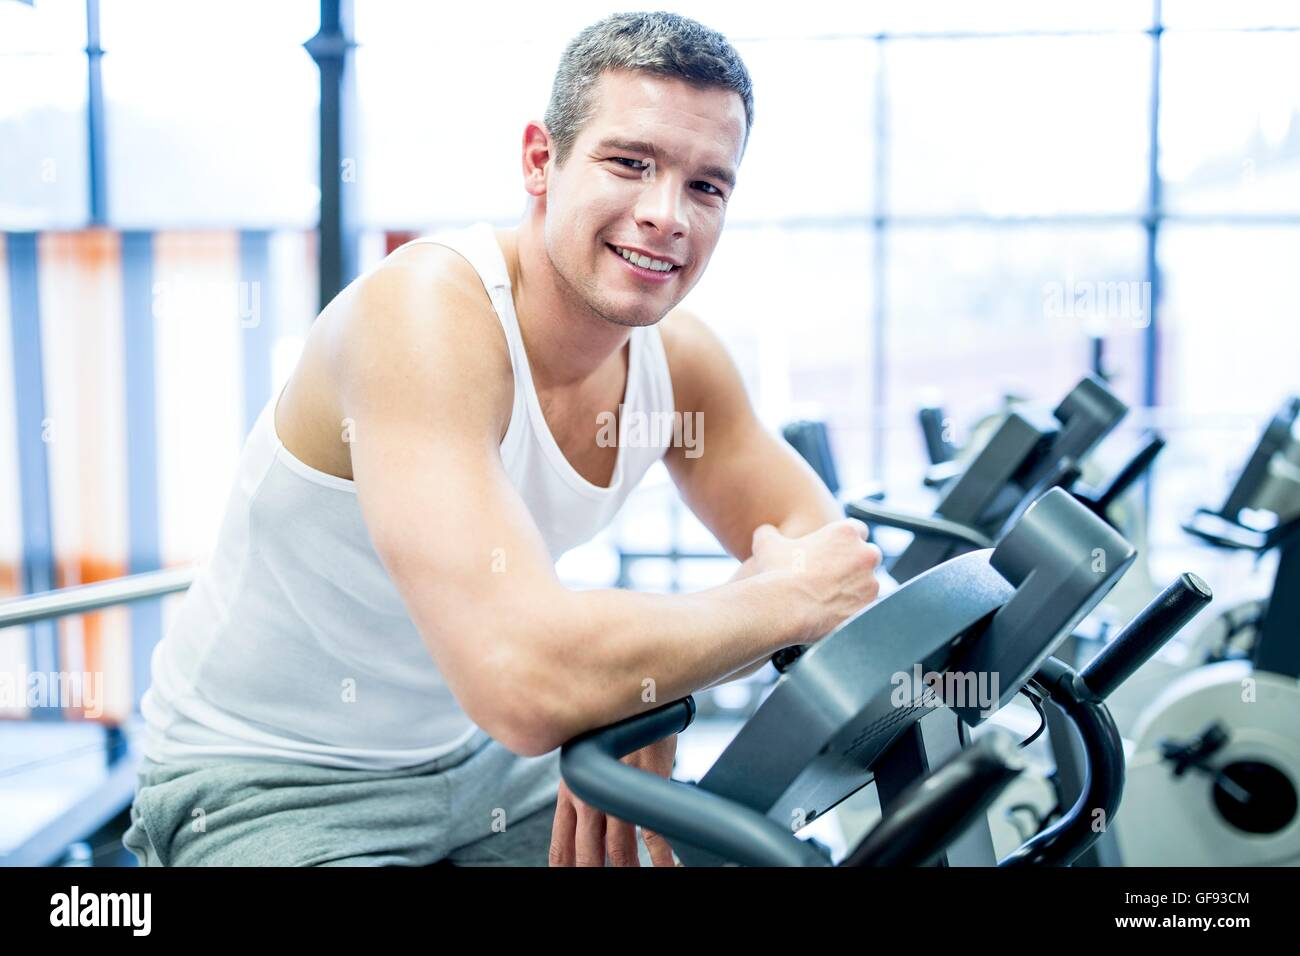 PROPERTY RELEASED. MODEL RELEASED. Portrait of young man resting while work out in gym, smiling. Stock Photo